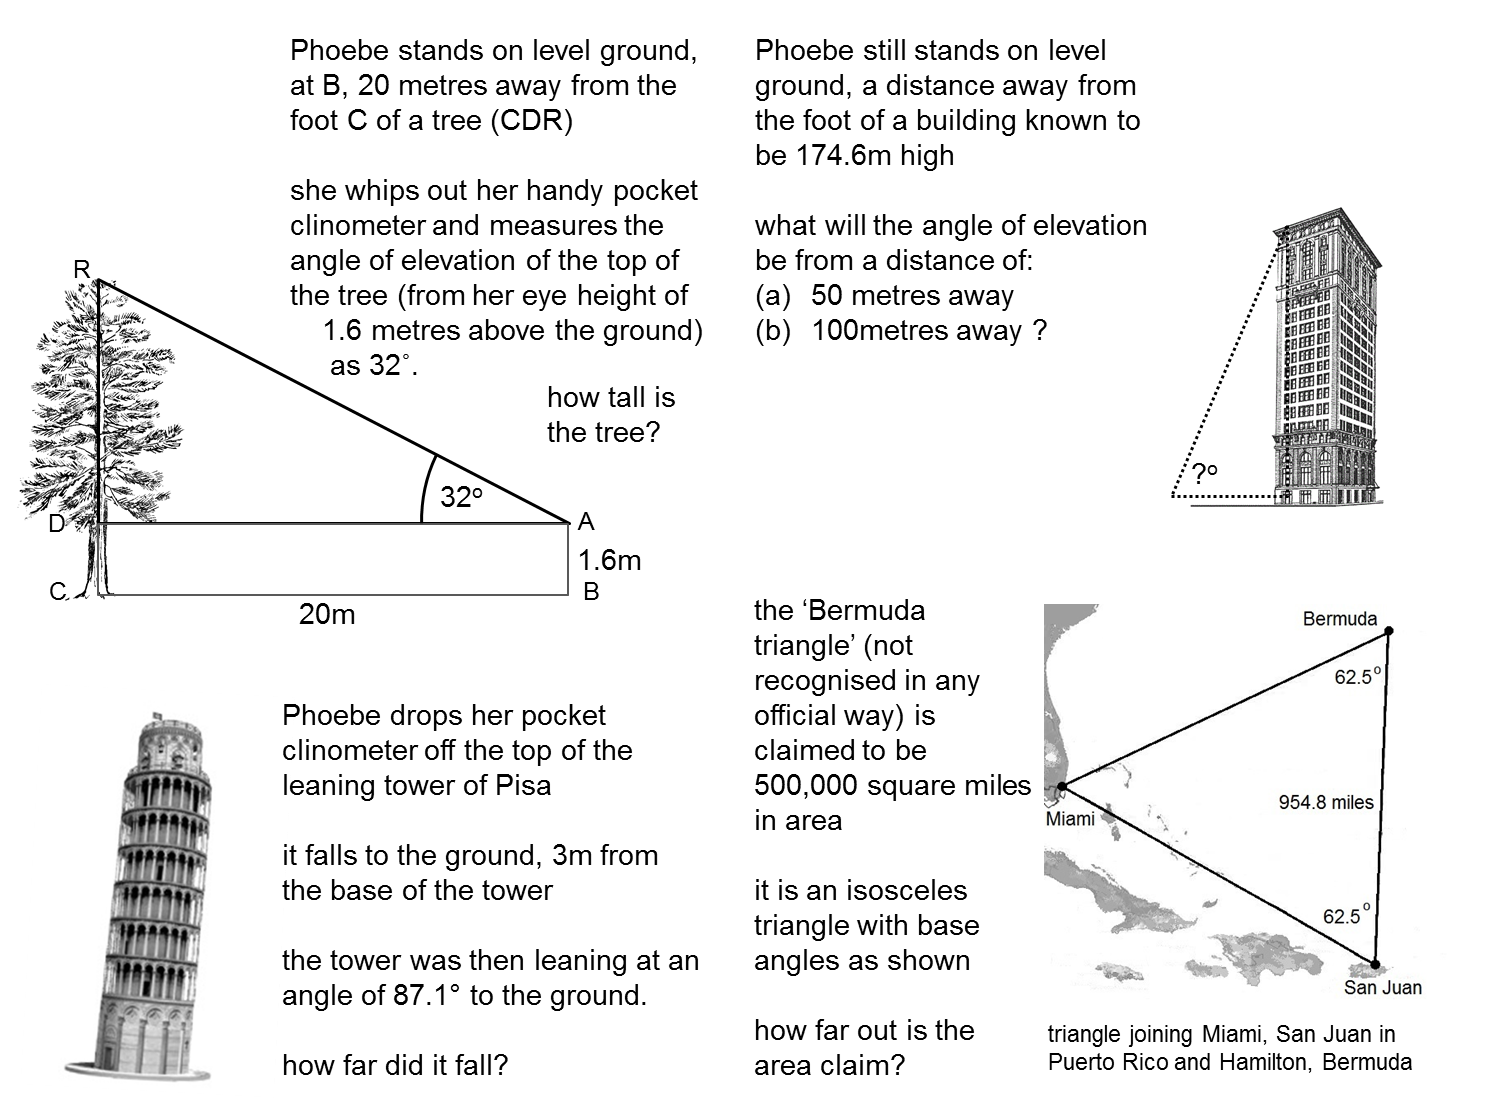 Worksheet Right Triangle Trigonometry with Answers I on Right as well Trigonometry Problems and Questions with Solutions   Grade 10 additionally types of triangle worksheet – jhltransports furthermore Area Of Triangle Using Trigonometry Worksheet 1 Answers   Free likewise trig worksheet – systosis furthermore  also Resourceaholic  Teaching Trigonometry   Trigonometry   Trigonometry also When To Use Sohcahtoa Math Finding The Area Of A Triangle furthermore Math Plane   Law of Sines and Cosines   Area of Triangles besides Area of Triangle Using Trigonometry Worksheet for 10th   12th Grade together with  likewise 1 2absinc Math Trigonometry 6 Area Rule Using Trig 1 Worksheet Math further  together with trigonometry worksheets – benaqiba moreover  as well 6 Best Images of Solving Right Triangle Trigonometry Worksheet. on area of triangle trig worksheet